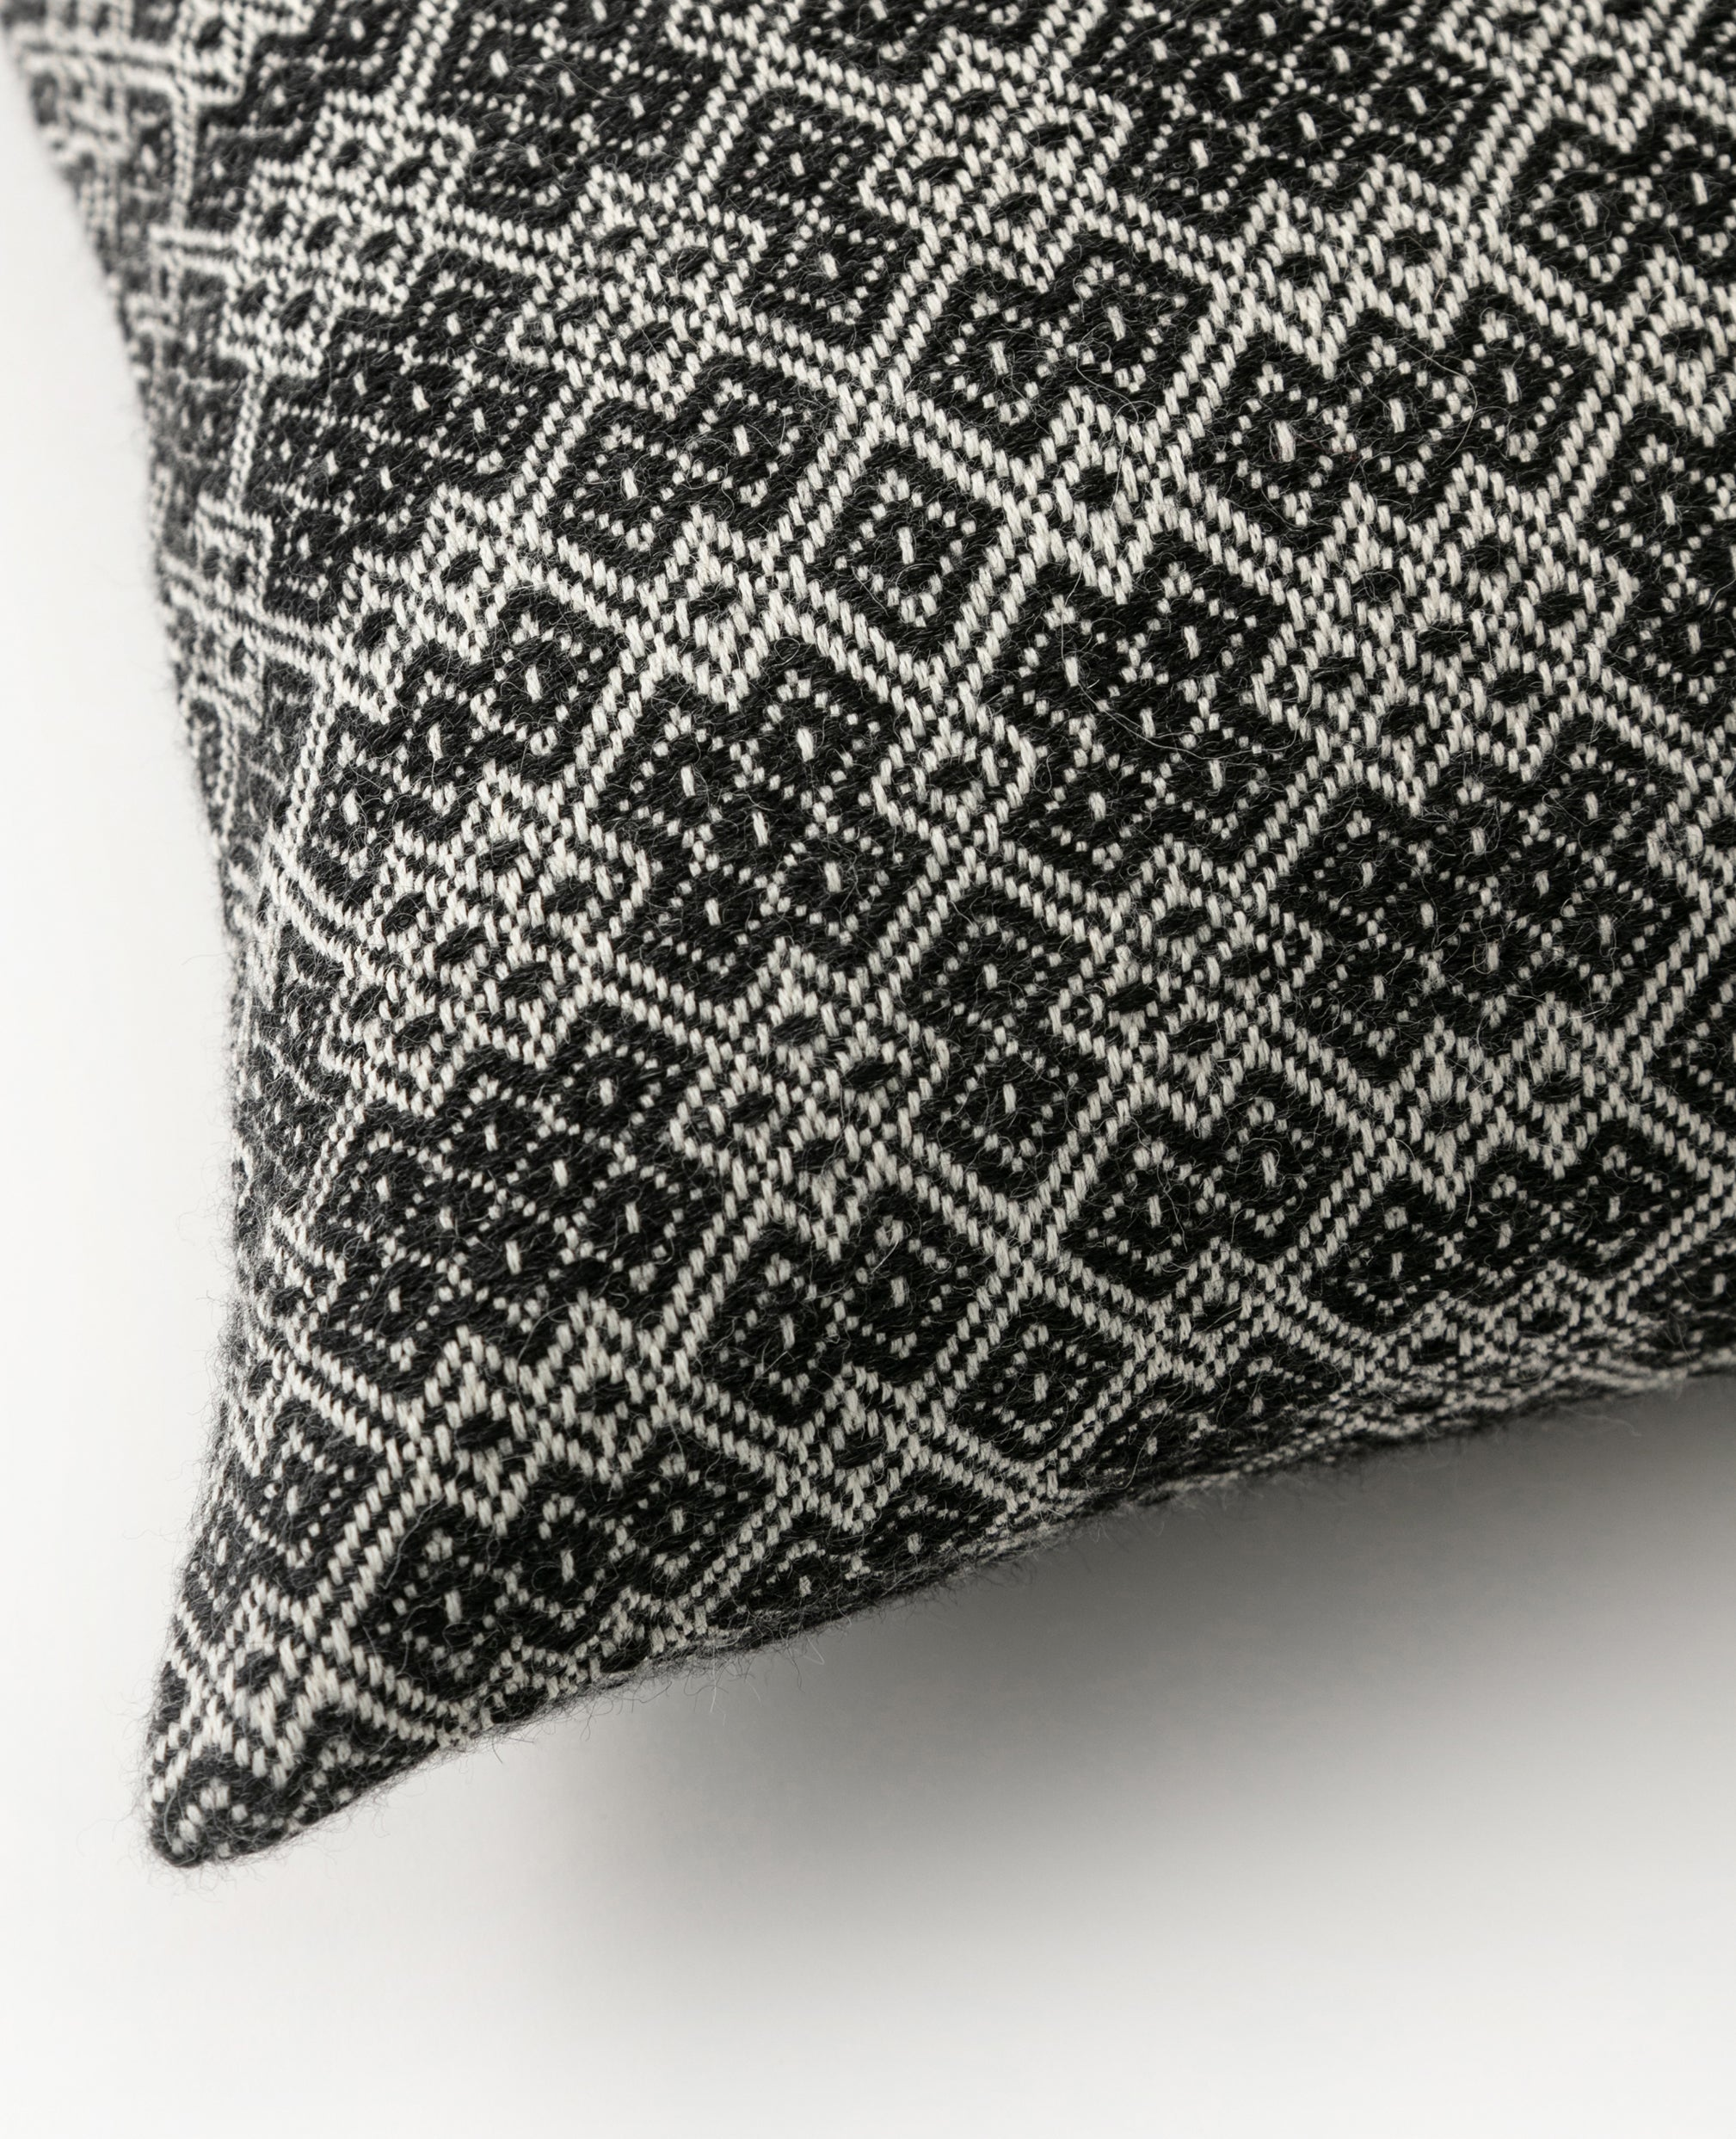 Vaeven Aro overshot cushion pillow close up